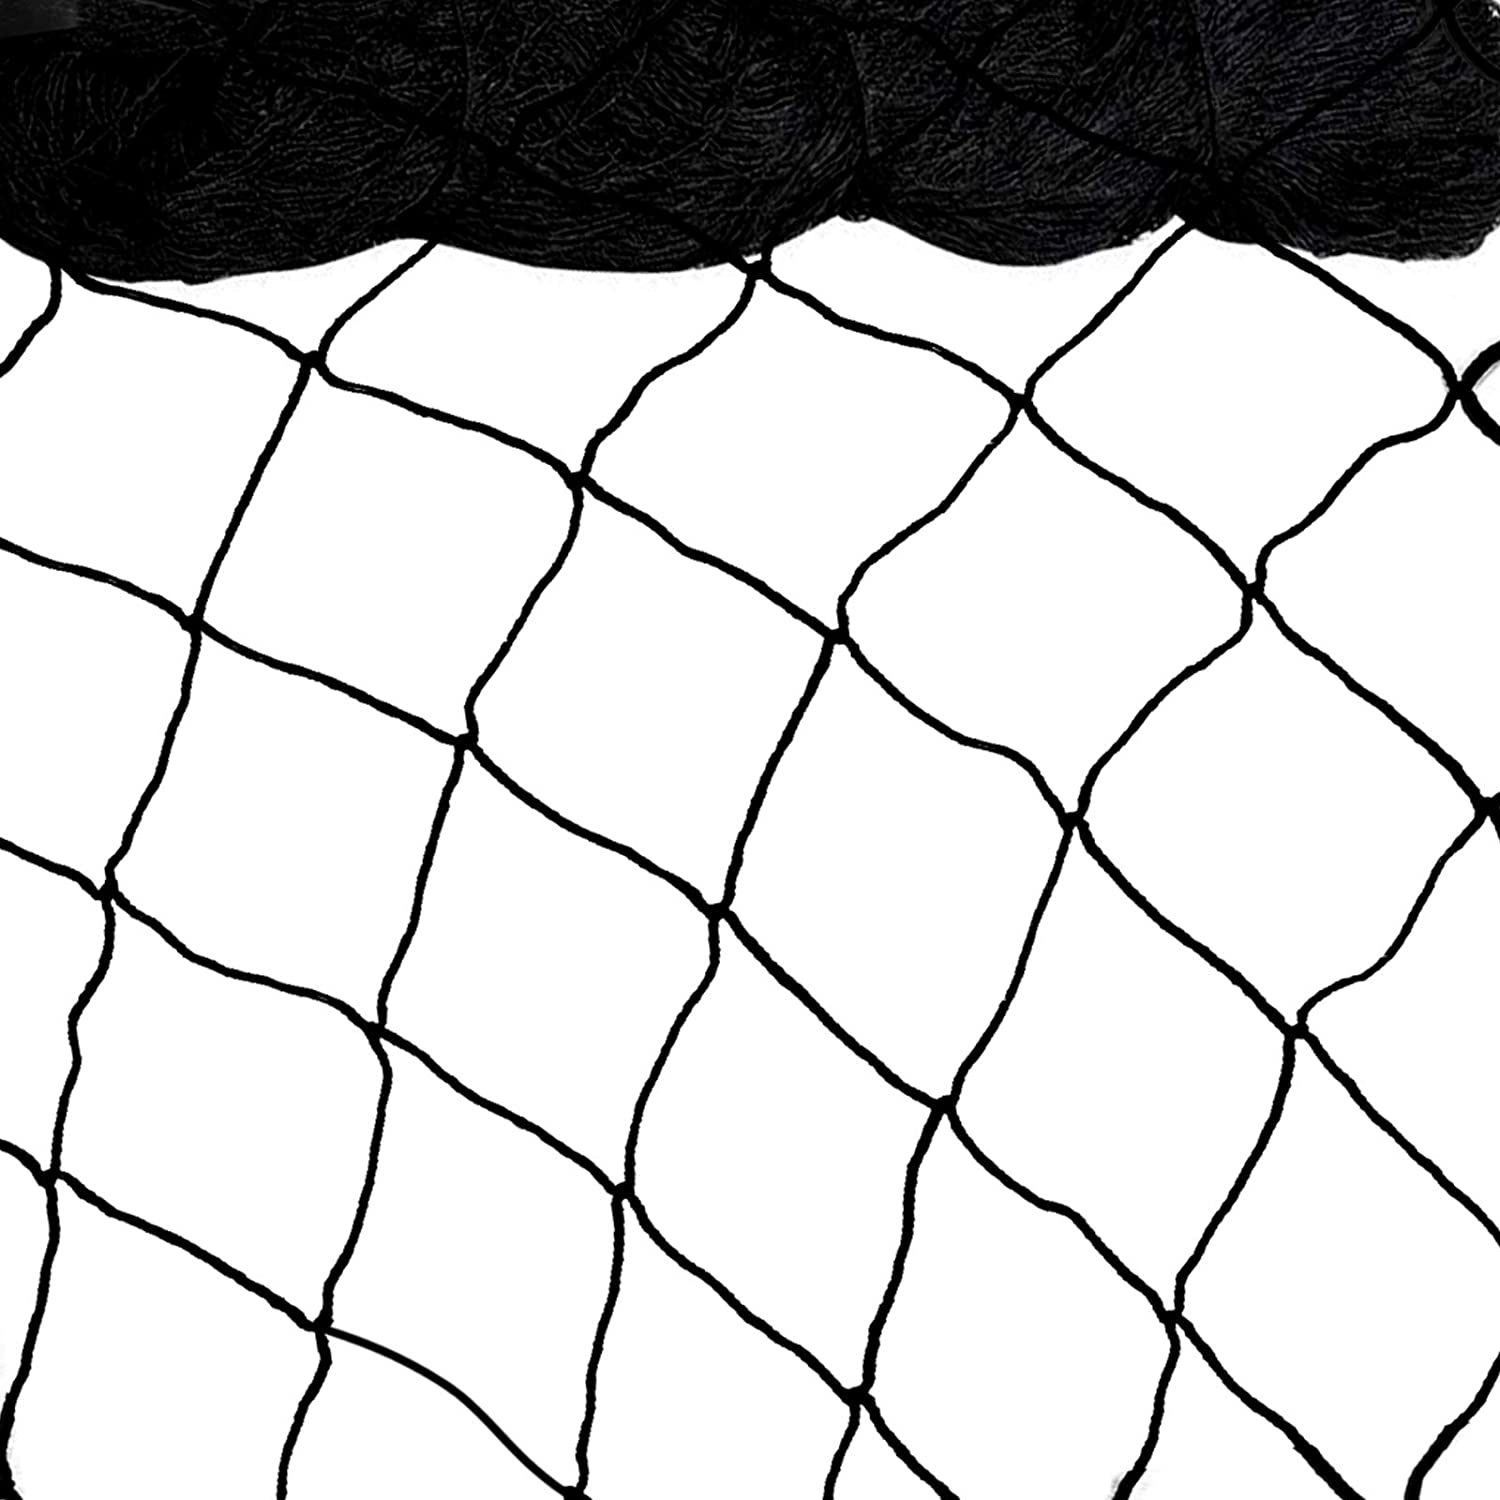 Bird Netting 25'x50' Heavy Duty Nylon Netting for Bird, Poultry,Deer and Other Pests, 2.4'' Square Mesh Garden Netting to Protect Fruit Trees, Plants and Vegetables (25'x50'-2.4'') : Patio, Lawn & Garden